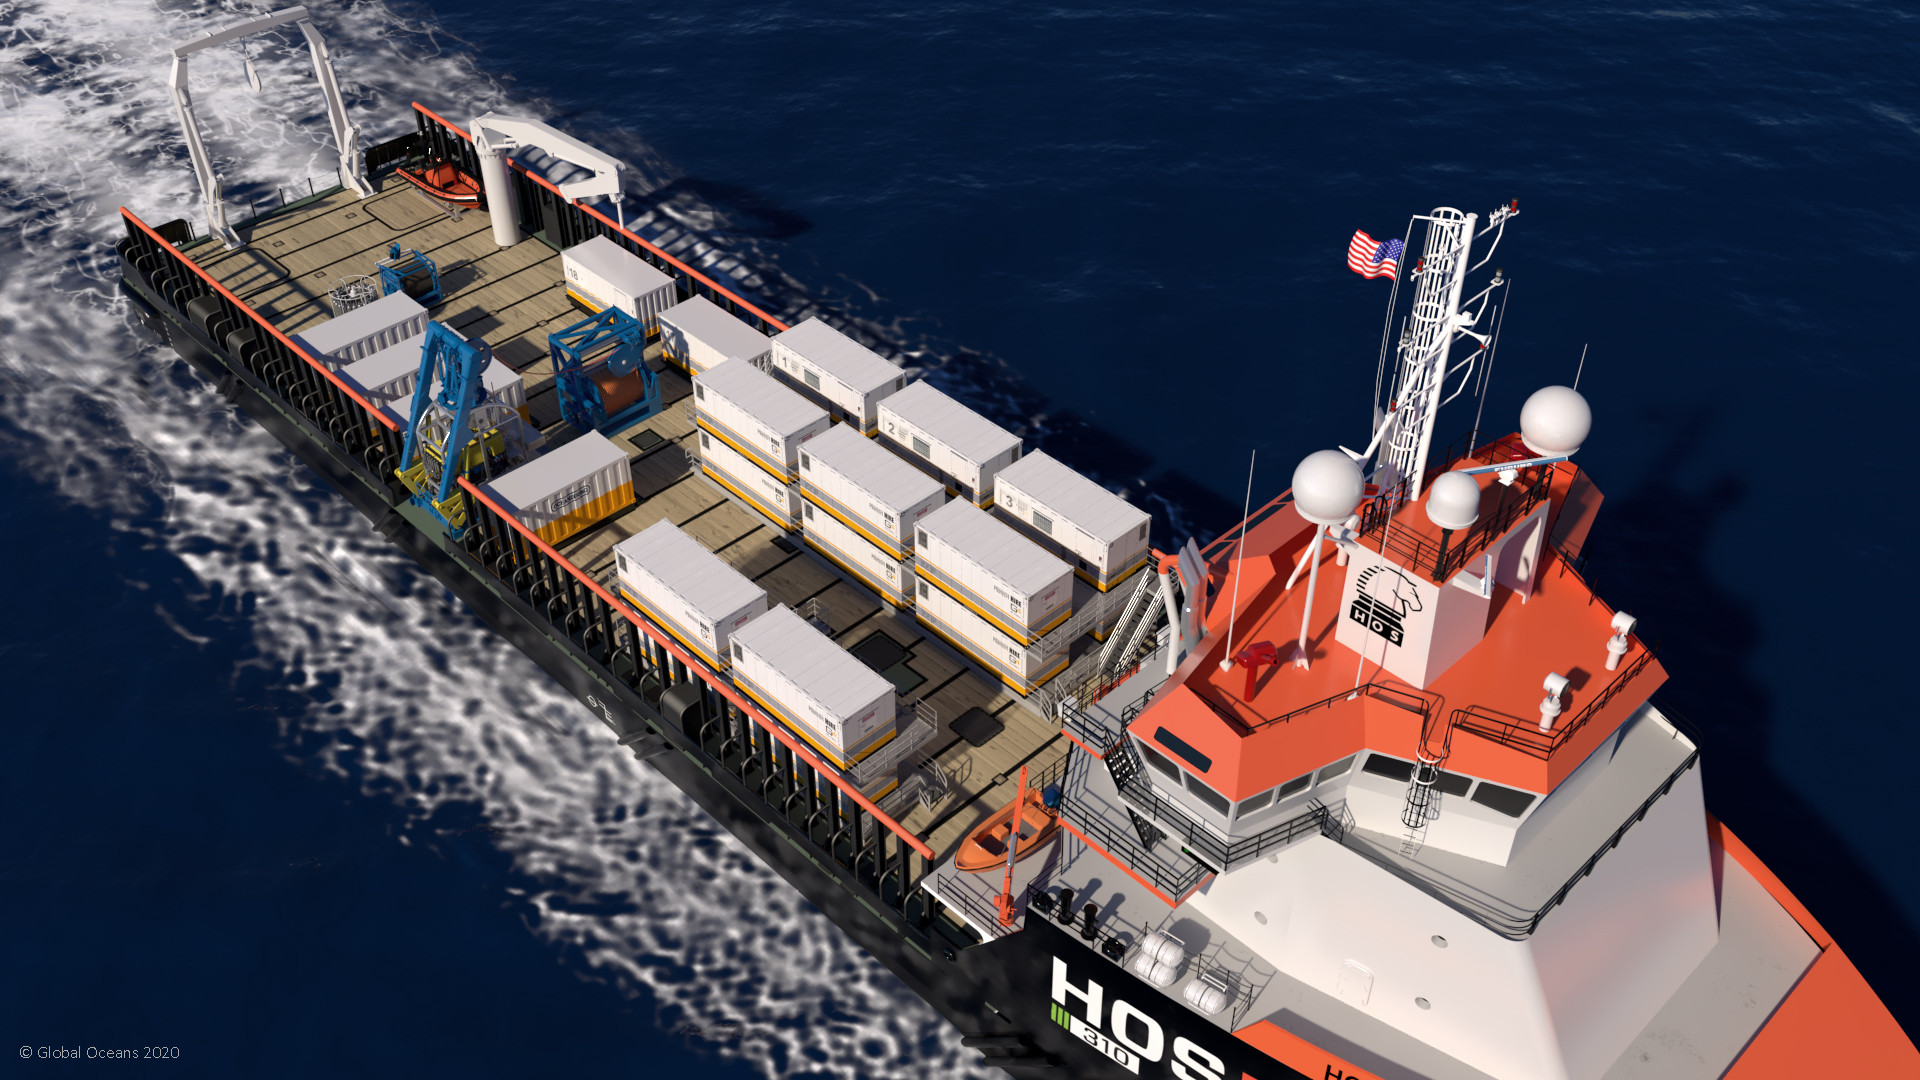 Figure 1: MARV configuration for the Global Seamounts Project on a Hornbeck HOS 310 Series offshore service vessel - Atlantic Ocean.